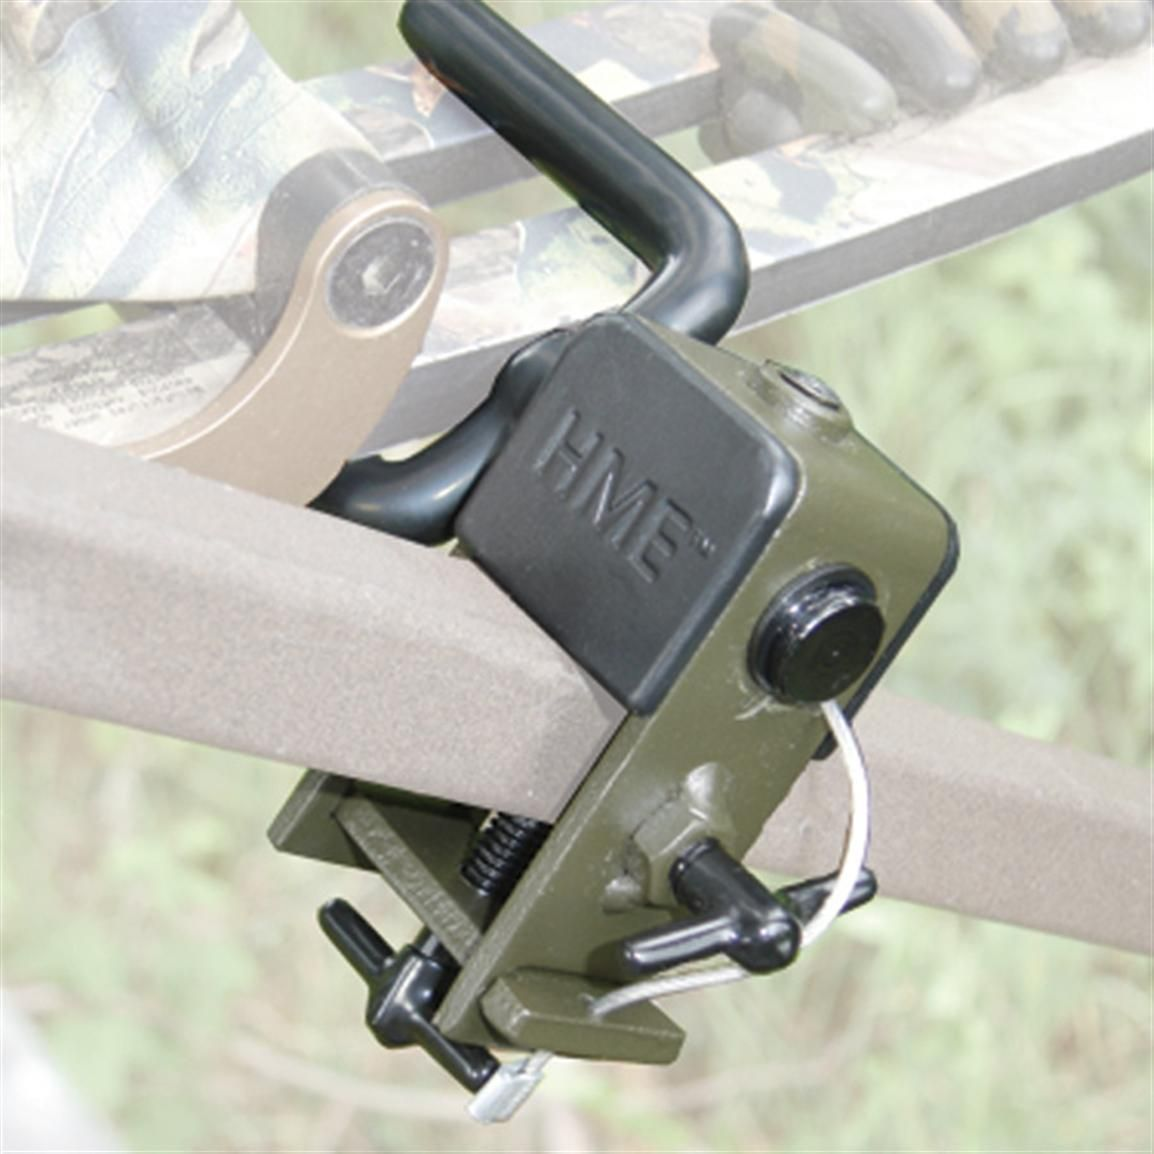 Hme Universal Mount Bow Holder 215810 Tree Stand Accessories At Sportsman S Guide Bow Holder Tree Stand Accessories Bows